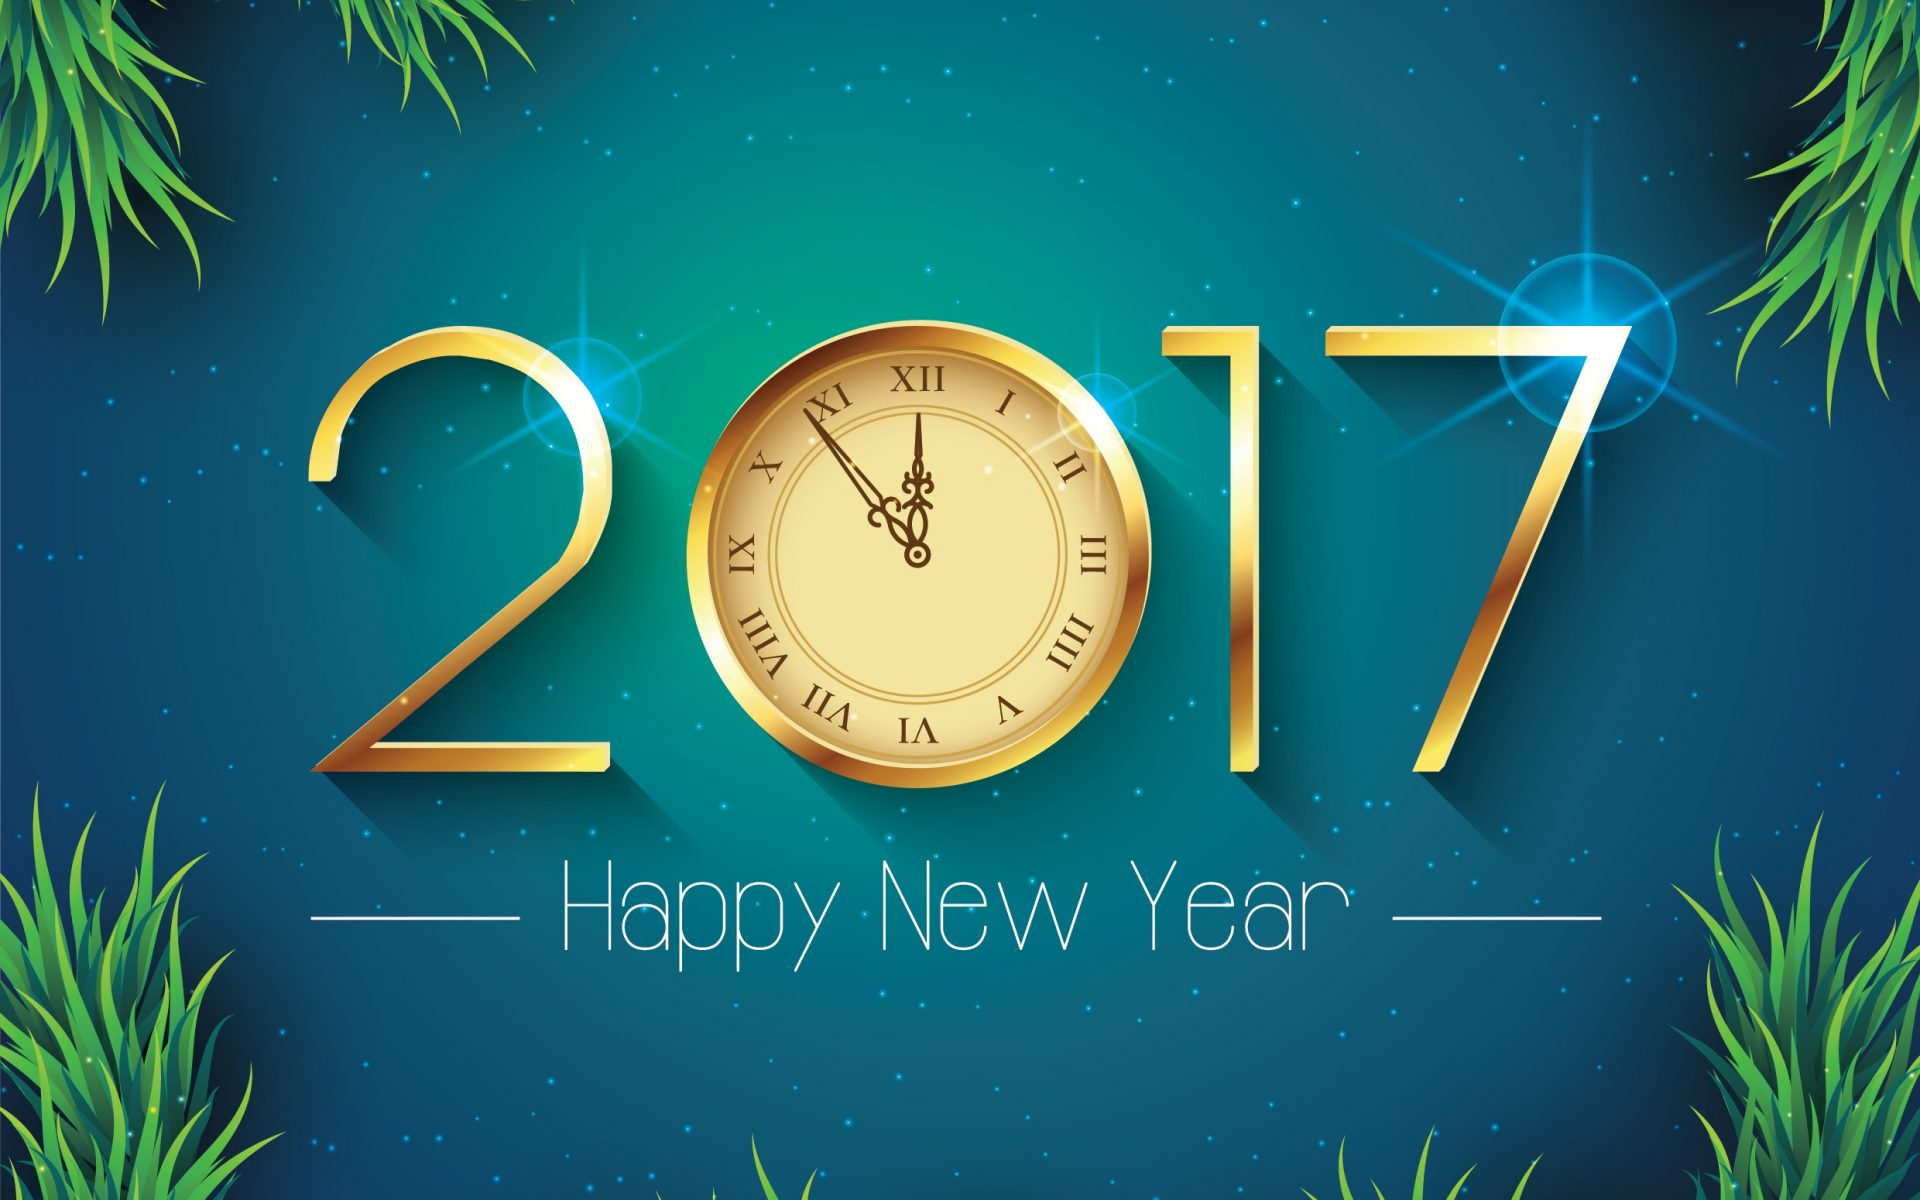 2017 happy new year wallpaper